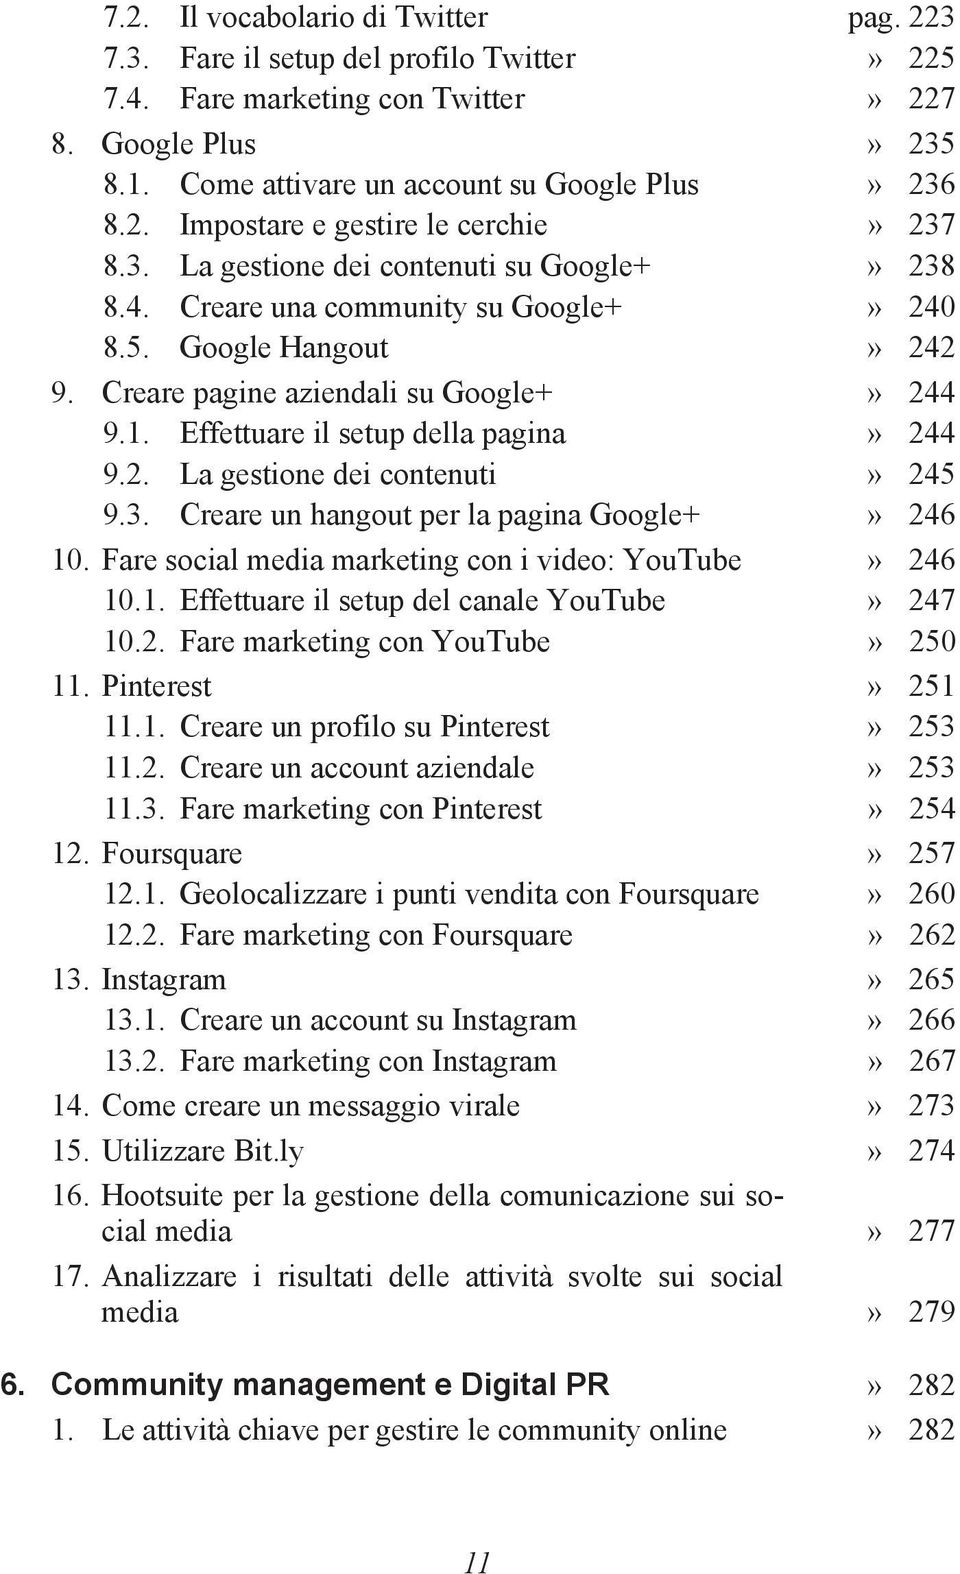 2. La gestione dei contenuti» 245 9.3. Creare un hangout per la pagina Google+» 246 10. Fare social media marketing con i video: YouTube» 246 10.1. Effettuare il setup del canale YouTube» 247 10.2. Fare marketing con YouTube» 250 11.